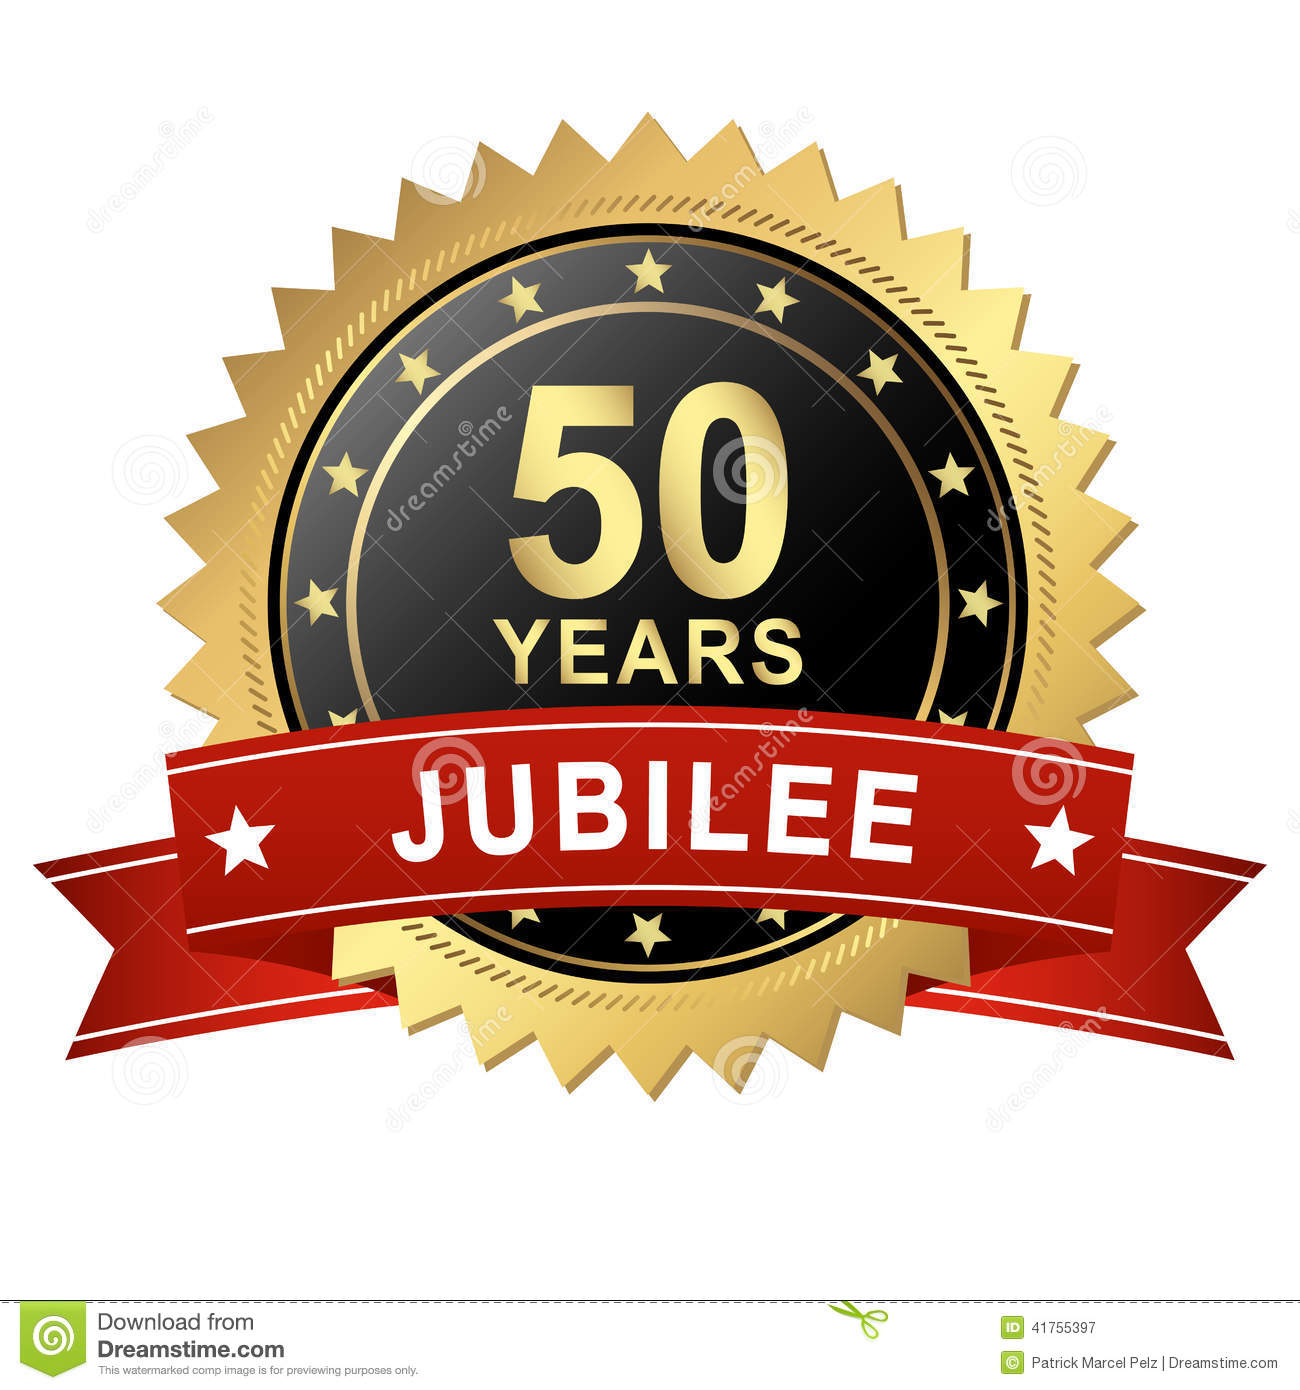 Jubilee button with banner 50 years stock vector illustration jubilee button with banner 50 years buycottarizona Choice Image